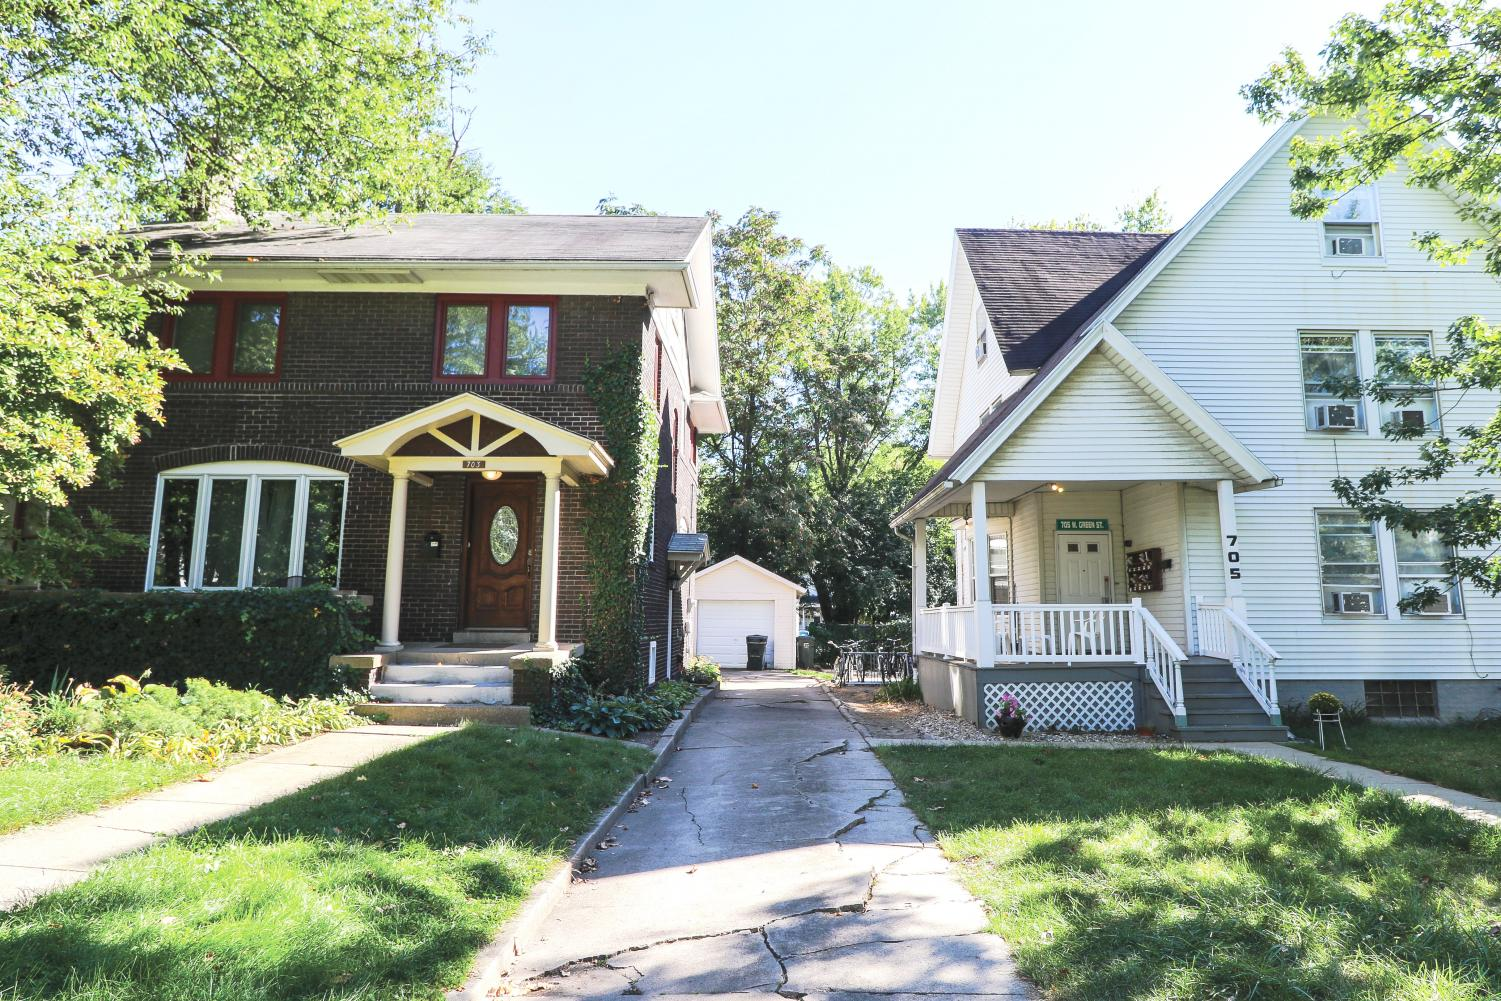 The view of two houses on the 700 block of West Green Street in Urbana. There are many houses in Urbana that are available for students to rent for the duration of the school year. Rachael Bolek, managing editor for online, says there are different pros and cons to living in a house versus an apartment.